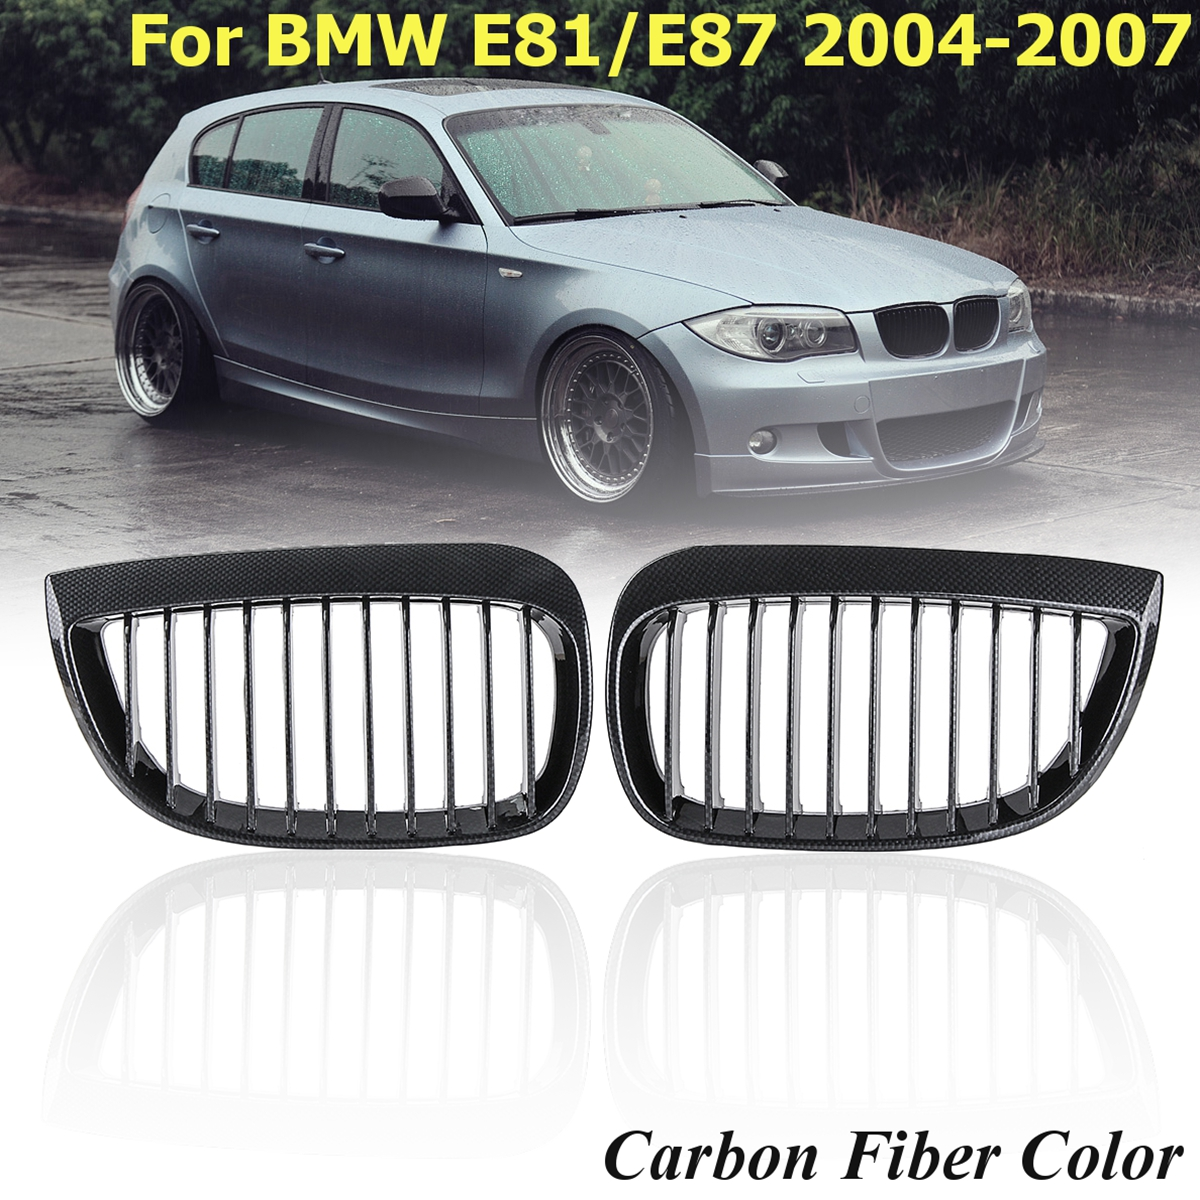 One Pair Carbon Fiber Look ABS Bumper Front Kidney Grille Set High Look Car Styling Racing Grill For BMW E87 2004 2005 2006 2007One Pair Carbon Fiber Look ABS Bumper Front Kidney Grille Set High Look Car Styling Racing Grill For BMW E87 2004 2005 2006 2007